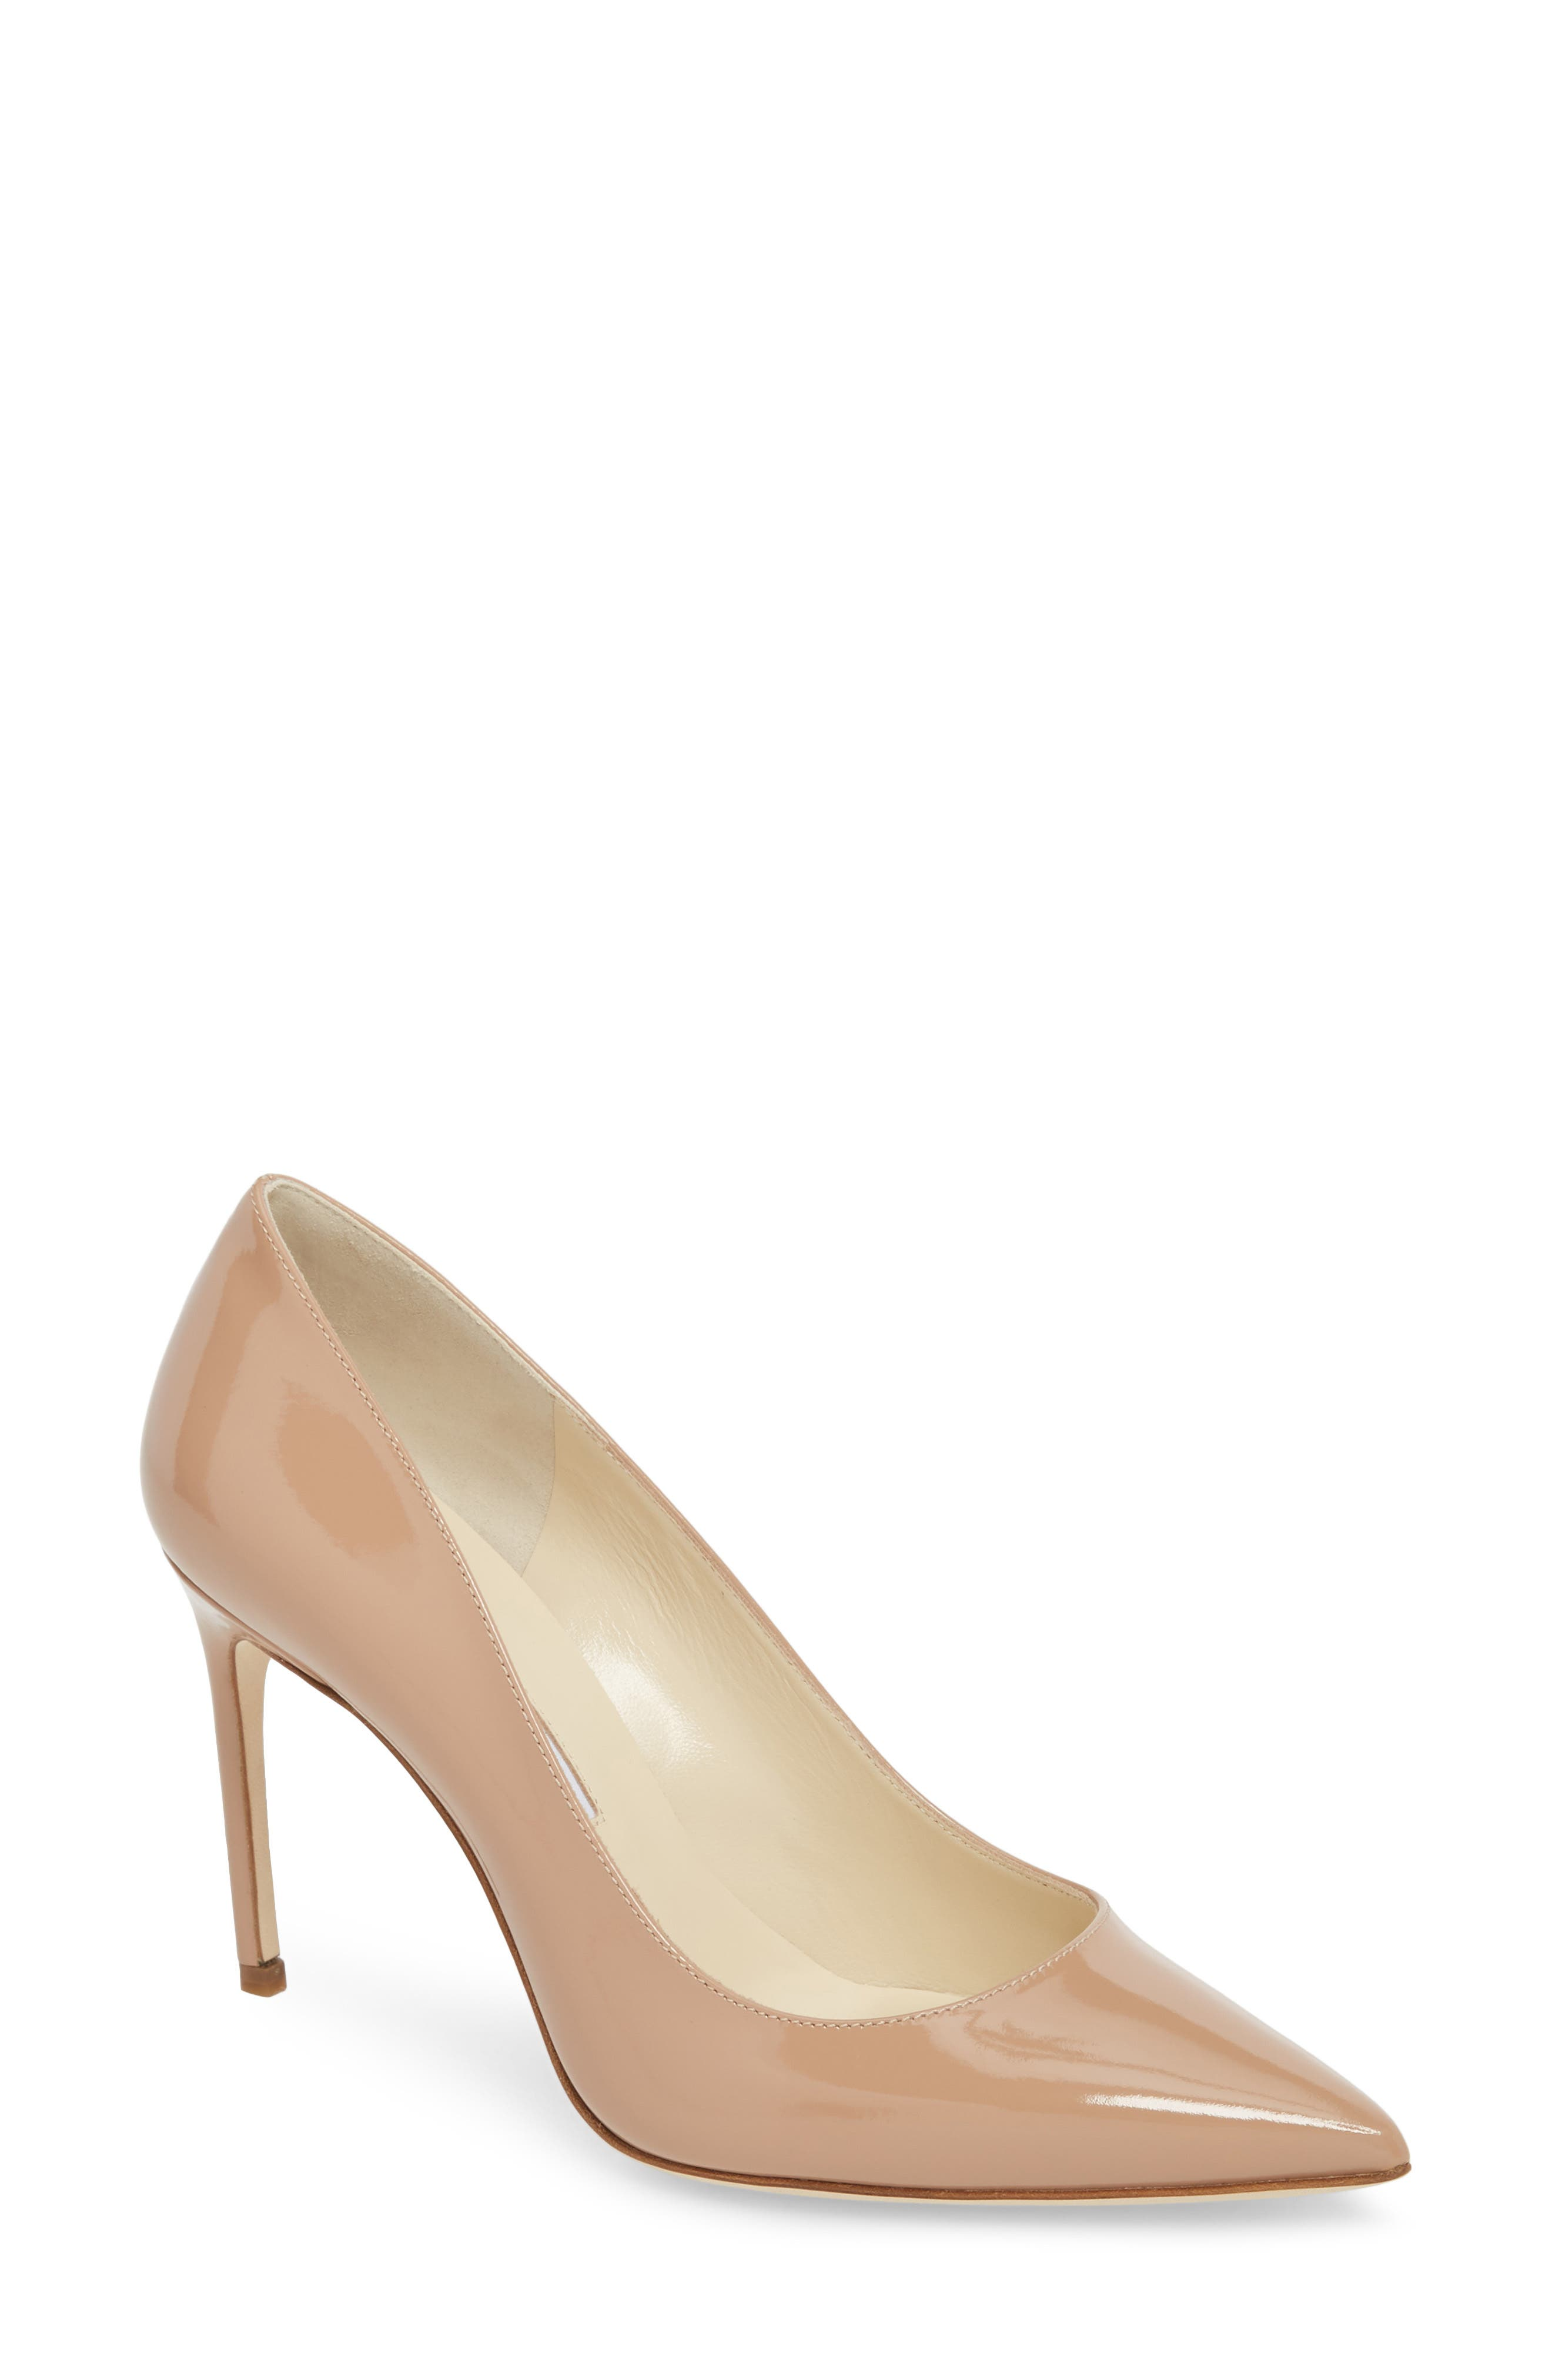 BRIAN ATWOOD Valerie Pointy Toe Pump in Cappucino Nude Patent